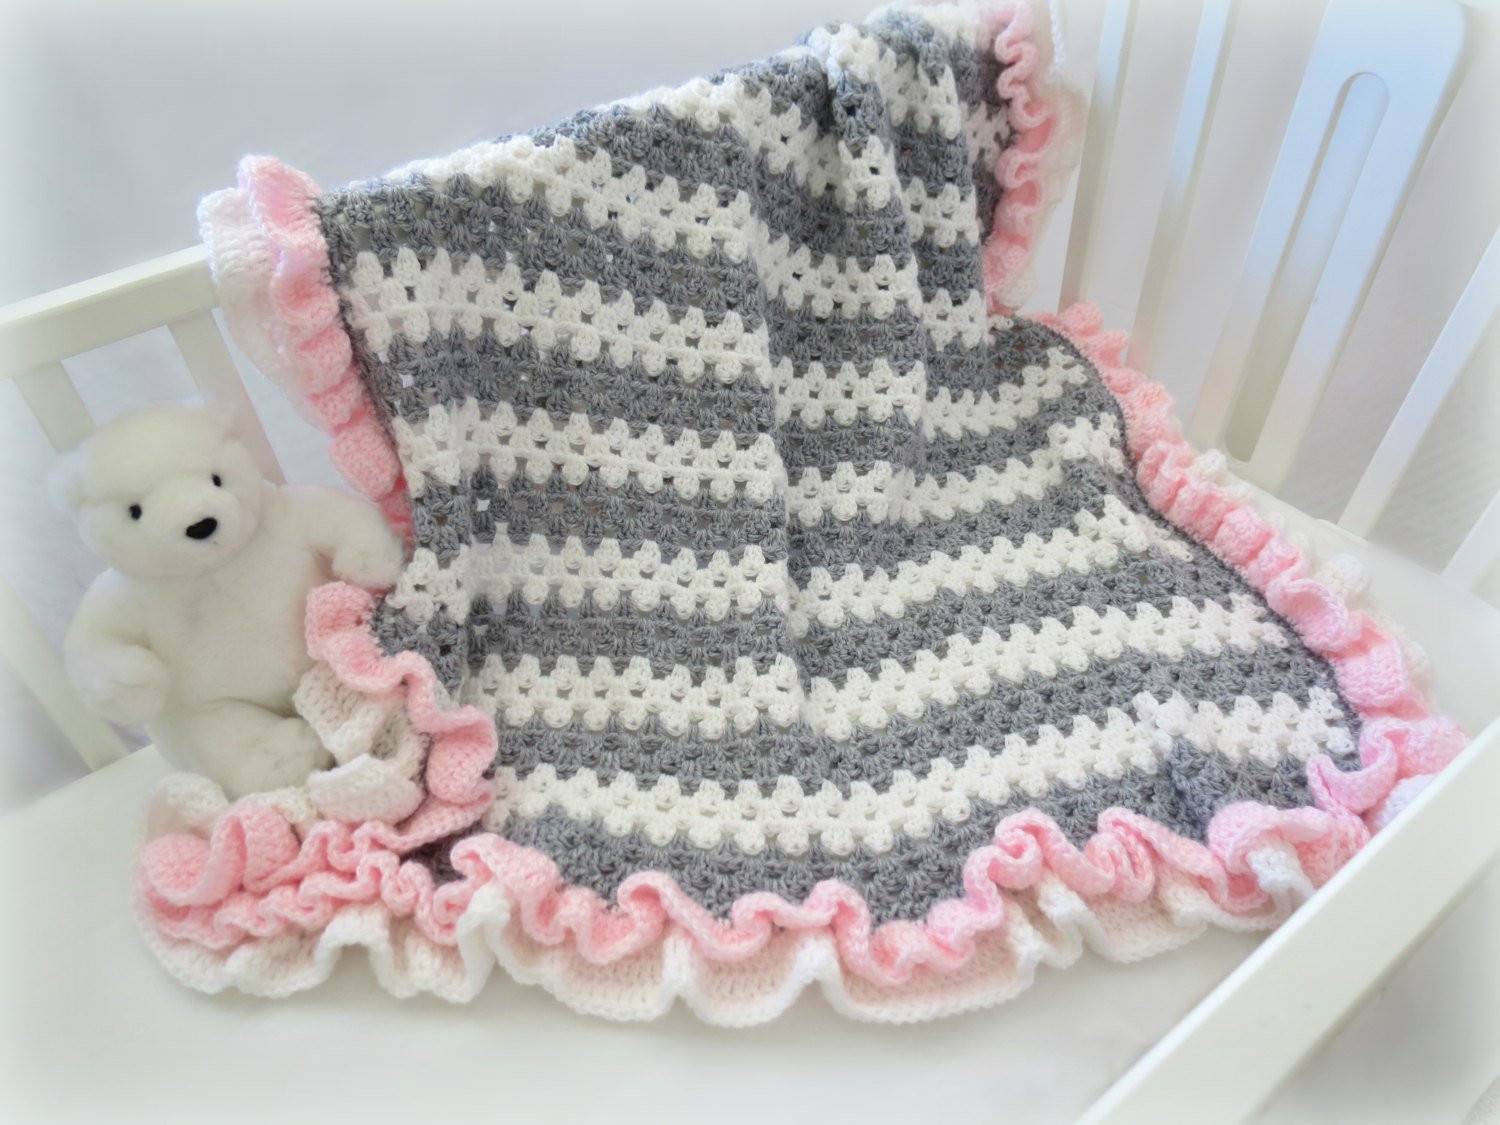 Baby Boy Crochet Blanket Patterns New Crochet Baby Blanket Pattern Baby Crochet Blanket Afghan Of Baby Boy Crochet Blanket Patterns New Free Baby Blanket Crochet Patterns Easy